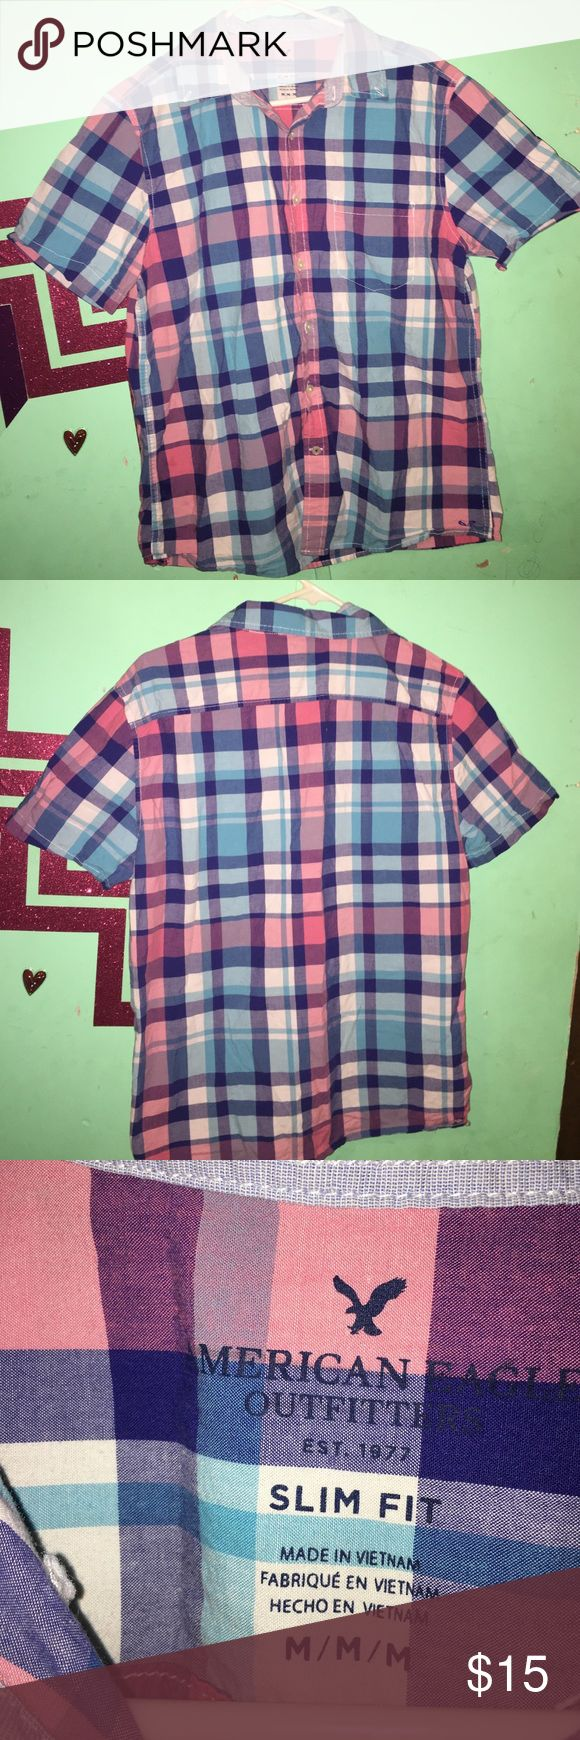 Men's dress shirt. American eagle Red, blue and black plaid American eagle dress shirt for men. Good condition. 100% cotton. American Eagle Outfitters Tops Button Down Shirts